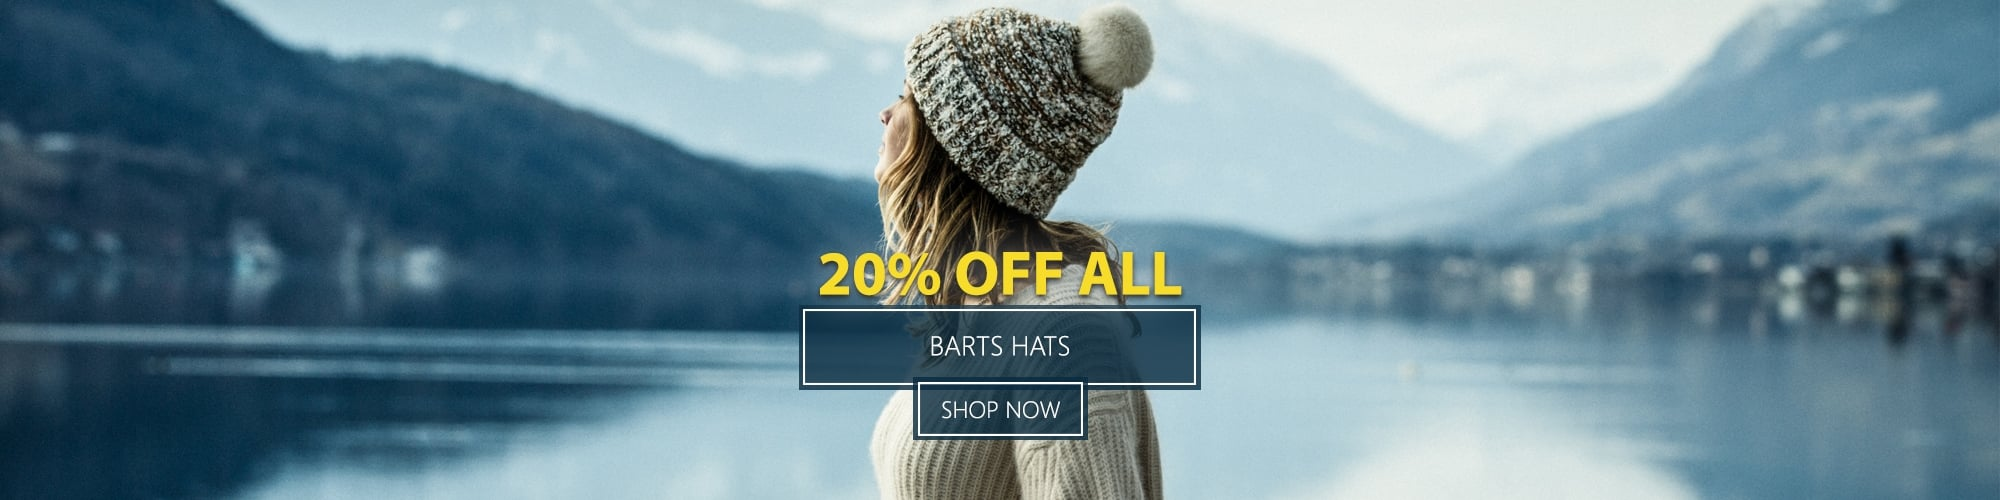 20% Off All Barts Hats